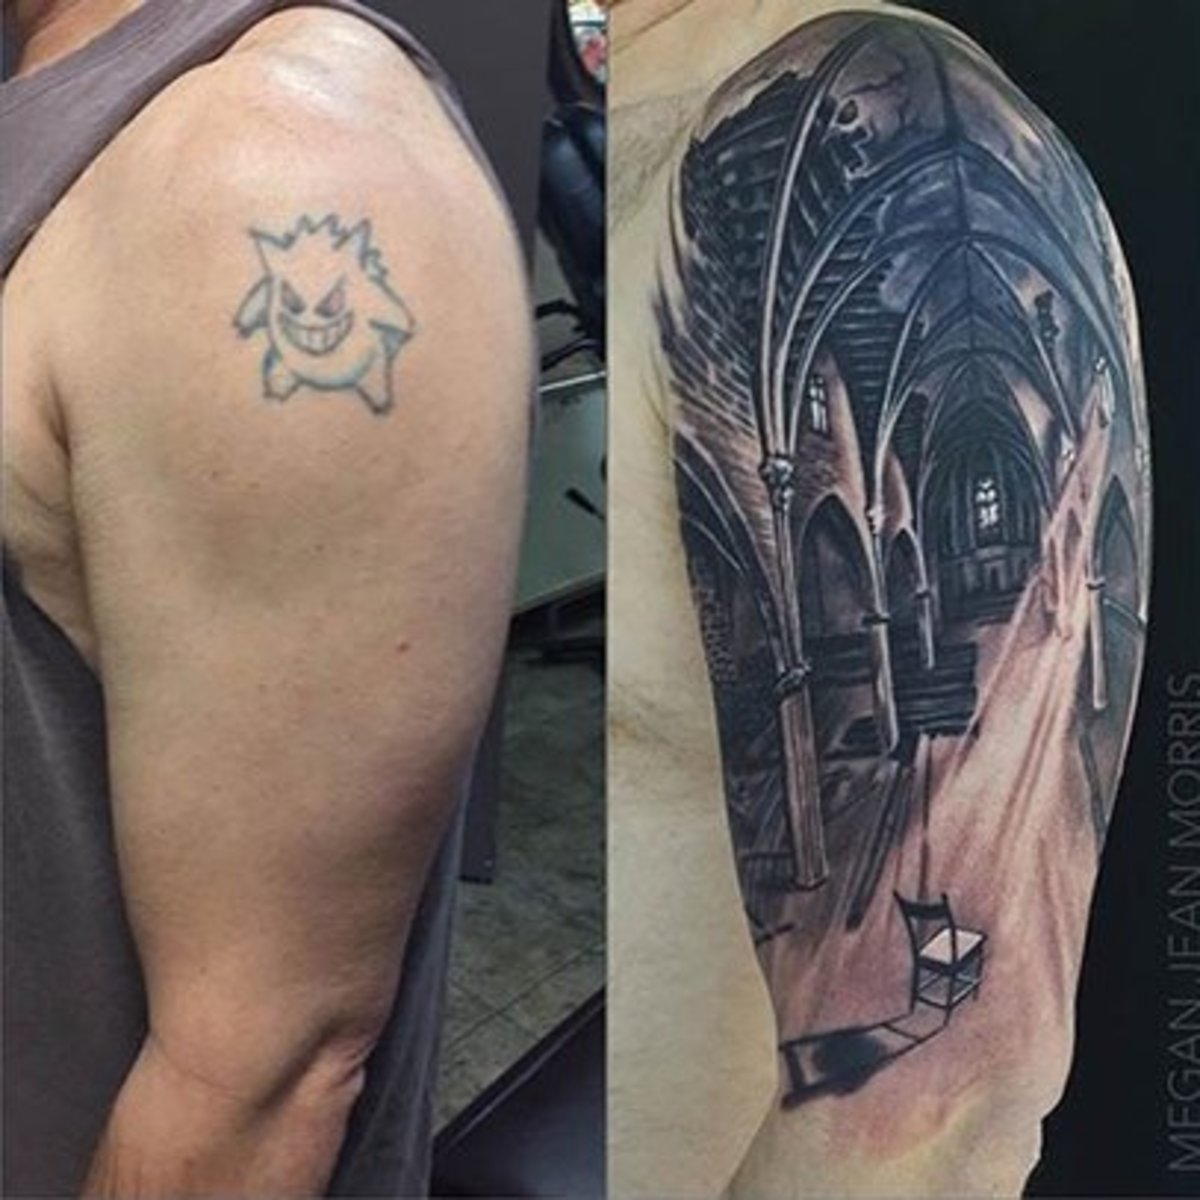 Cover Up Tattoos - Inked Magazine - Tattoo Ideas, Artists and Models